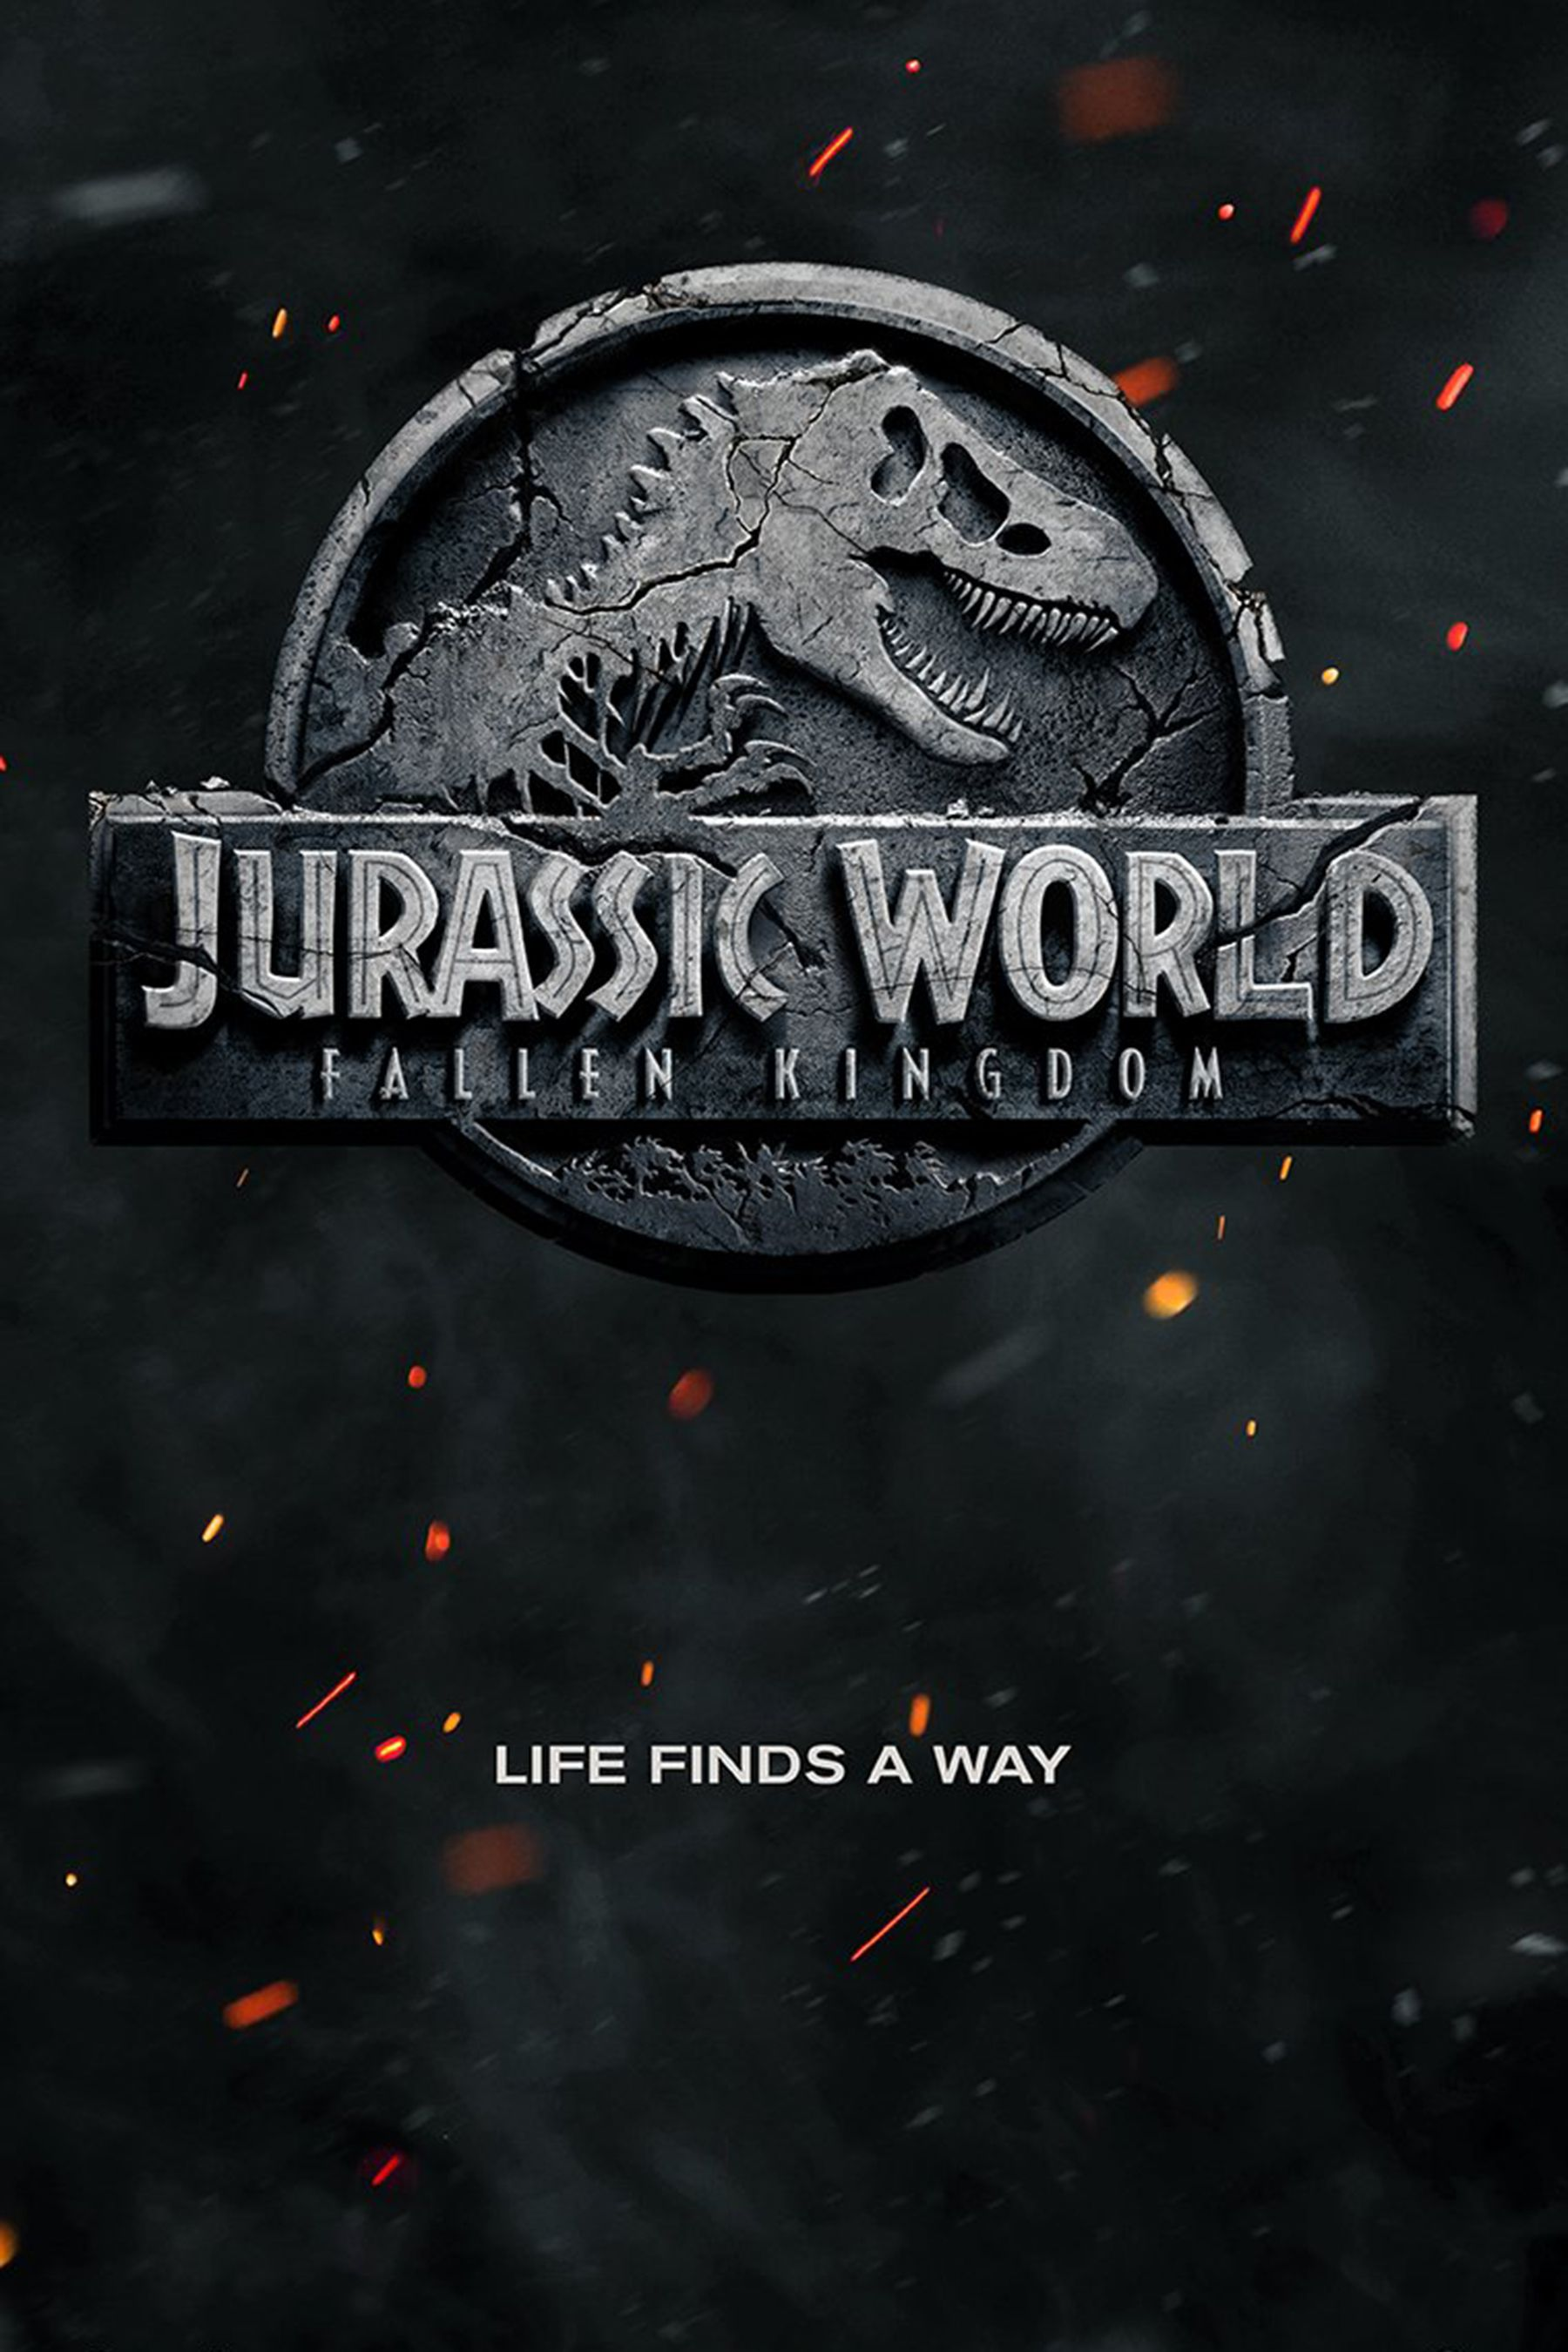 Jurassic World Fallen Kingdom Release Date June 22 2018 Photo Source Universal Pictures